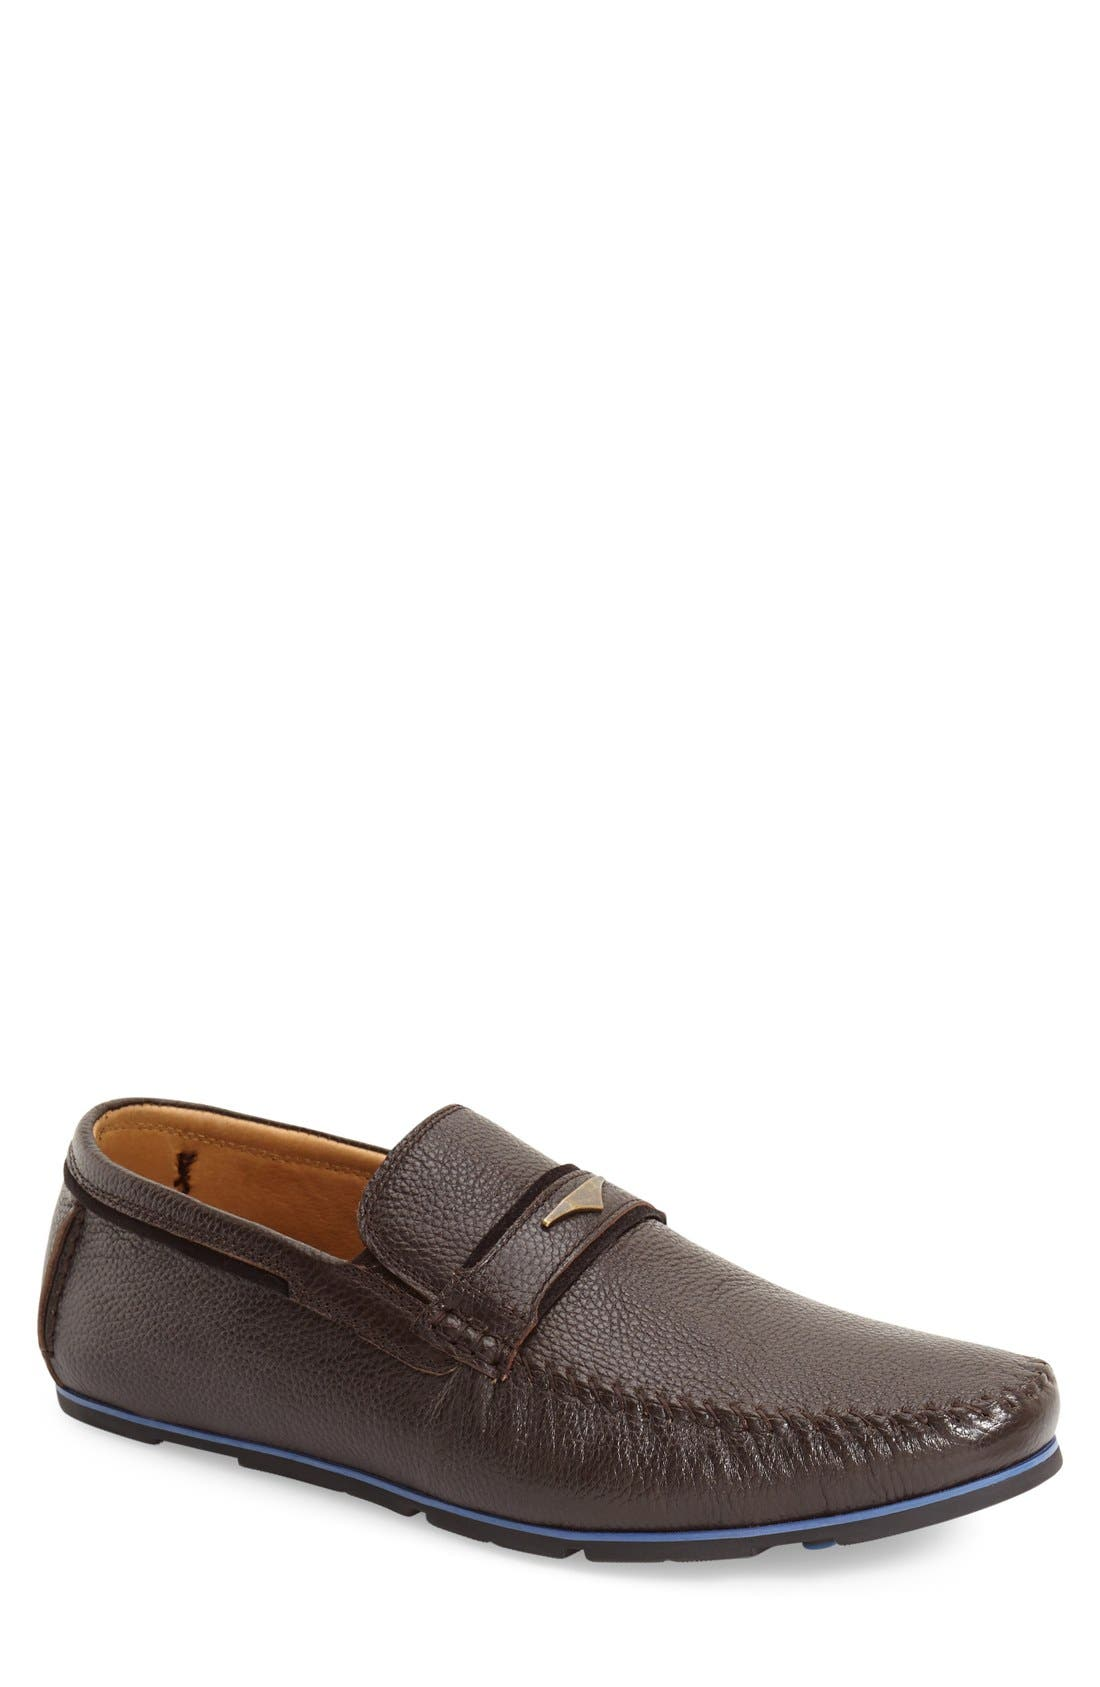 Leather Loafer,                             Main thumbnail 1, color,                             Brown Leather